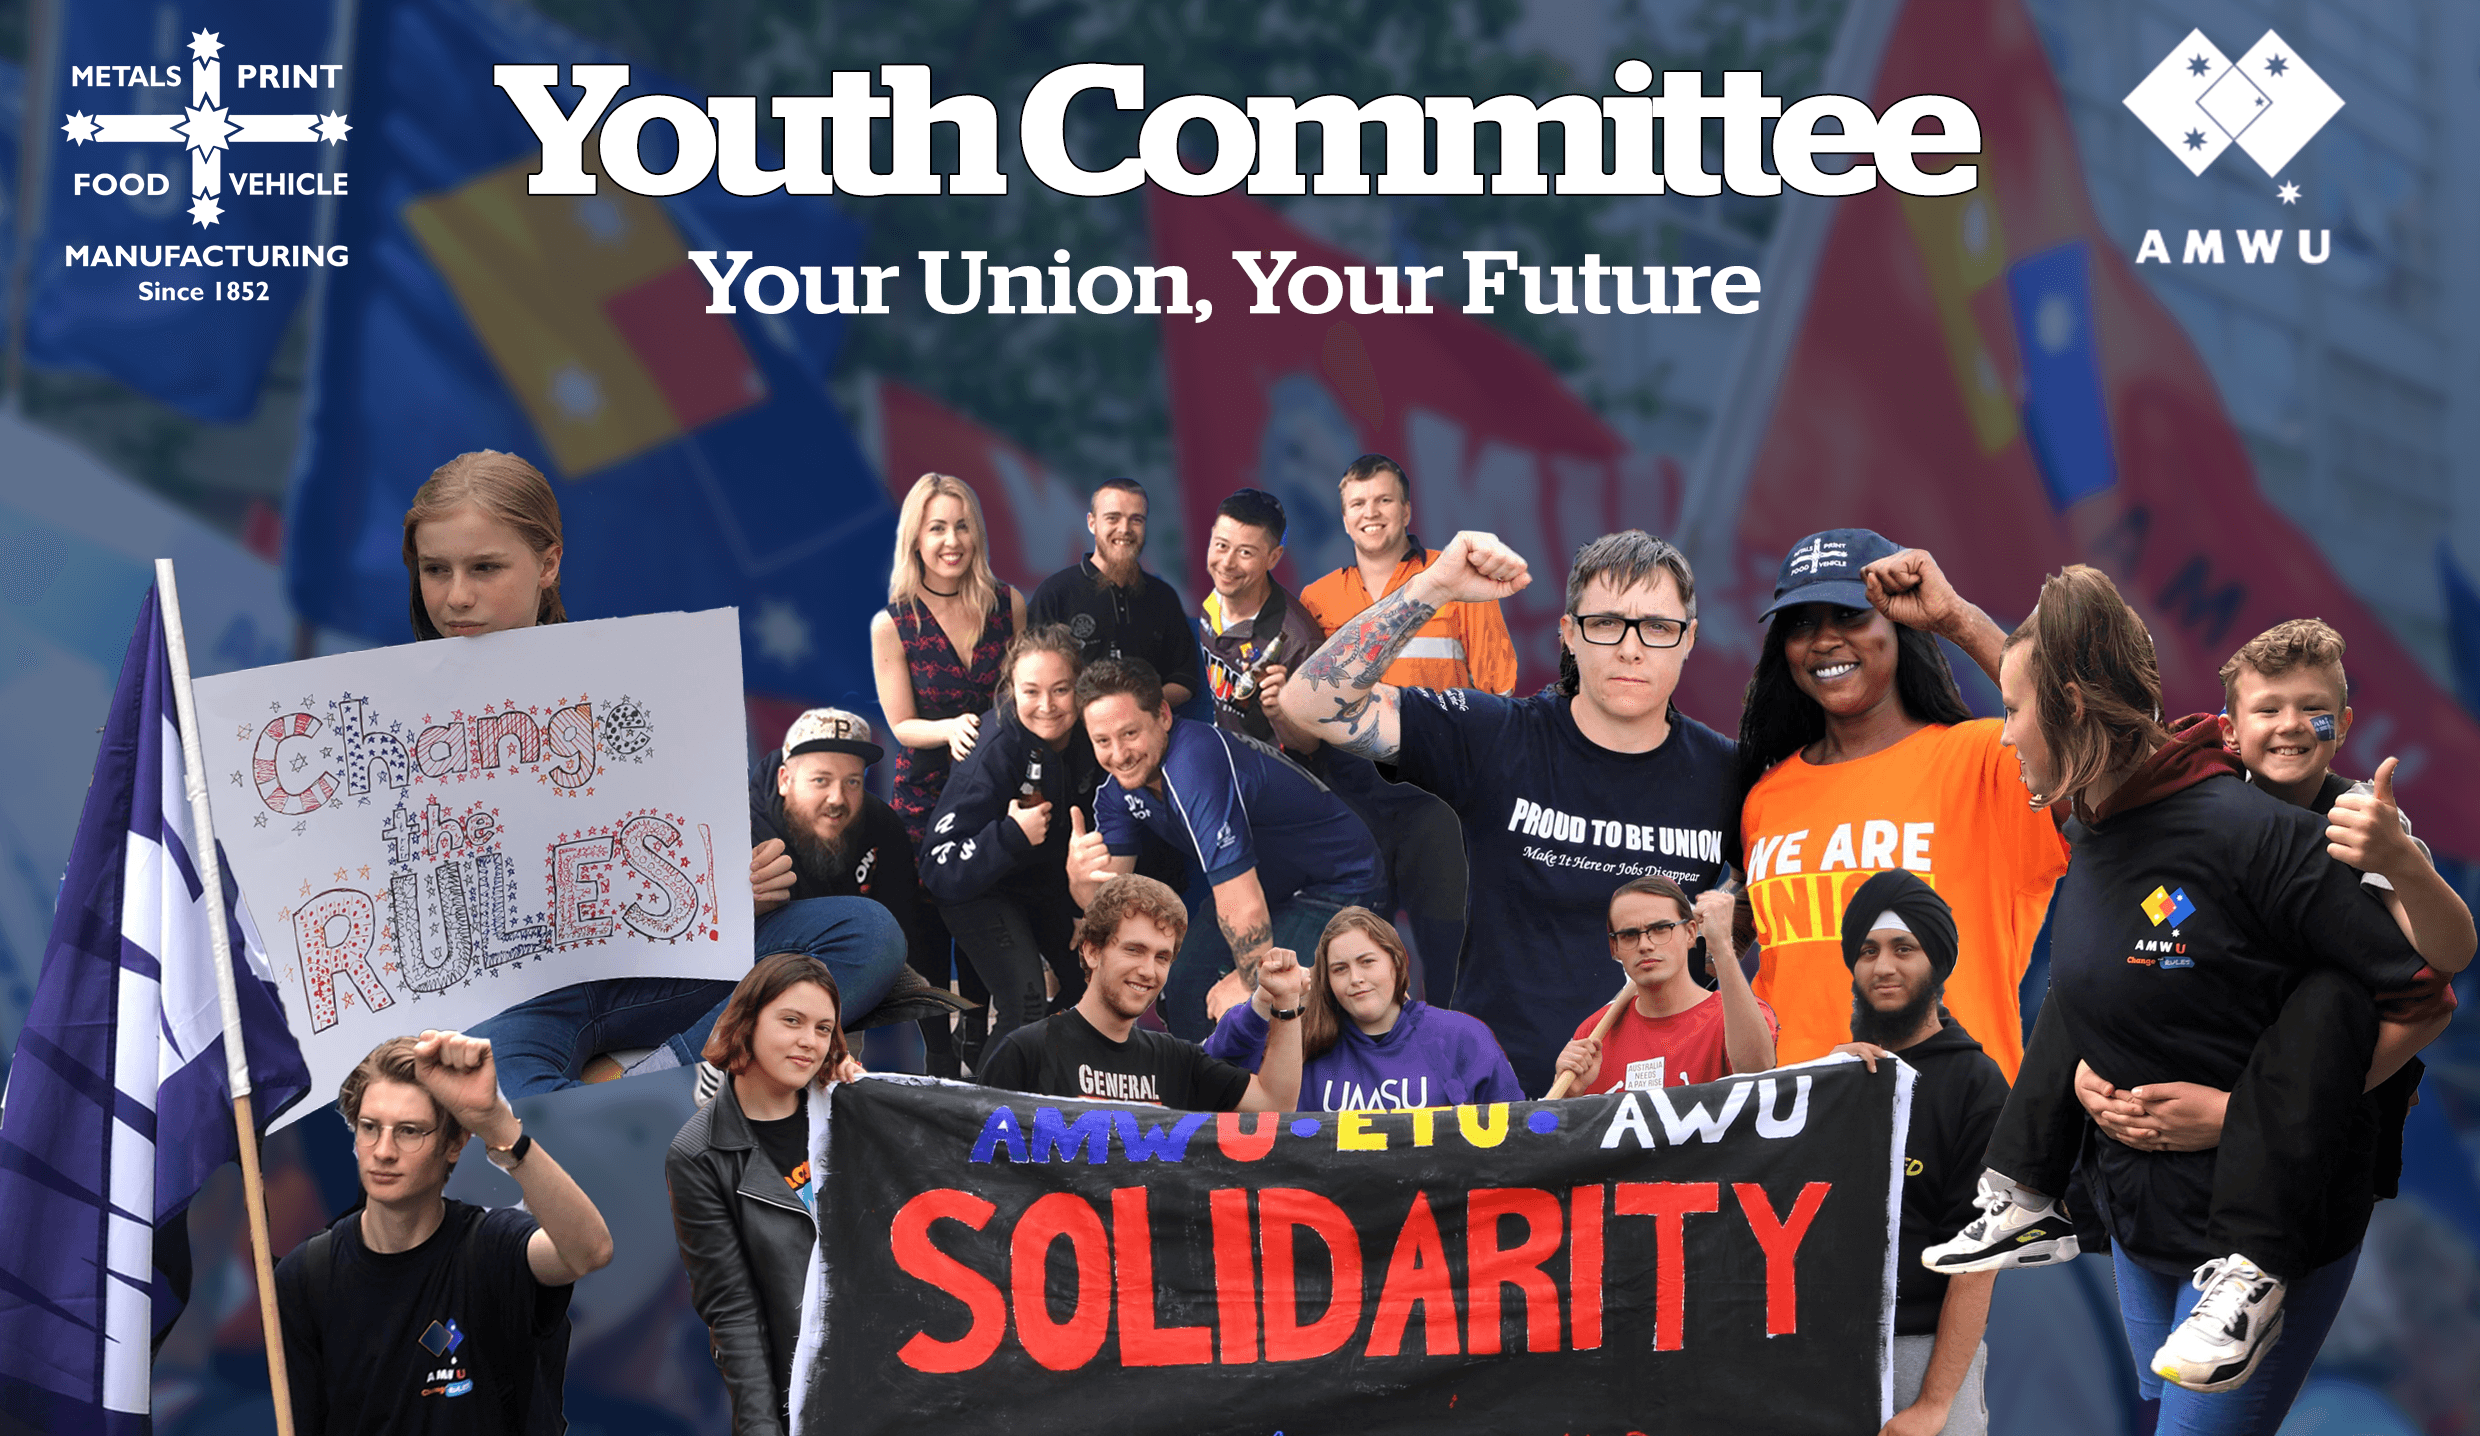 Youth Committee Sign Up